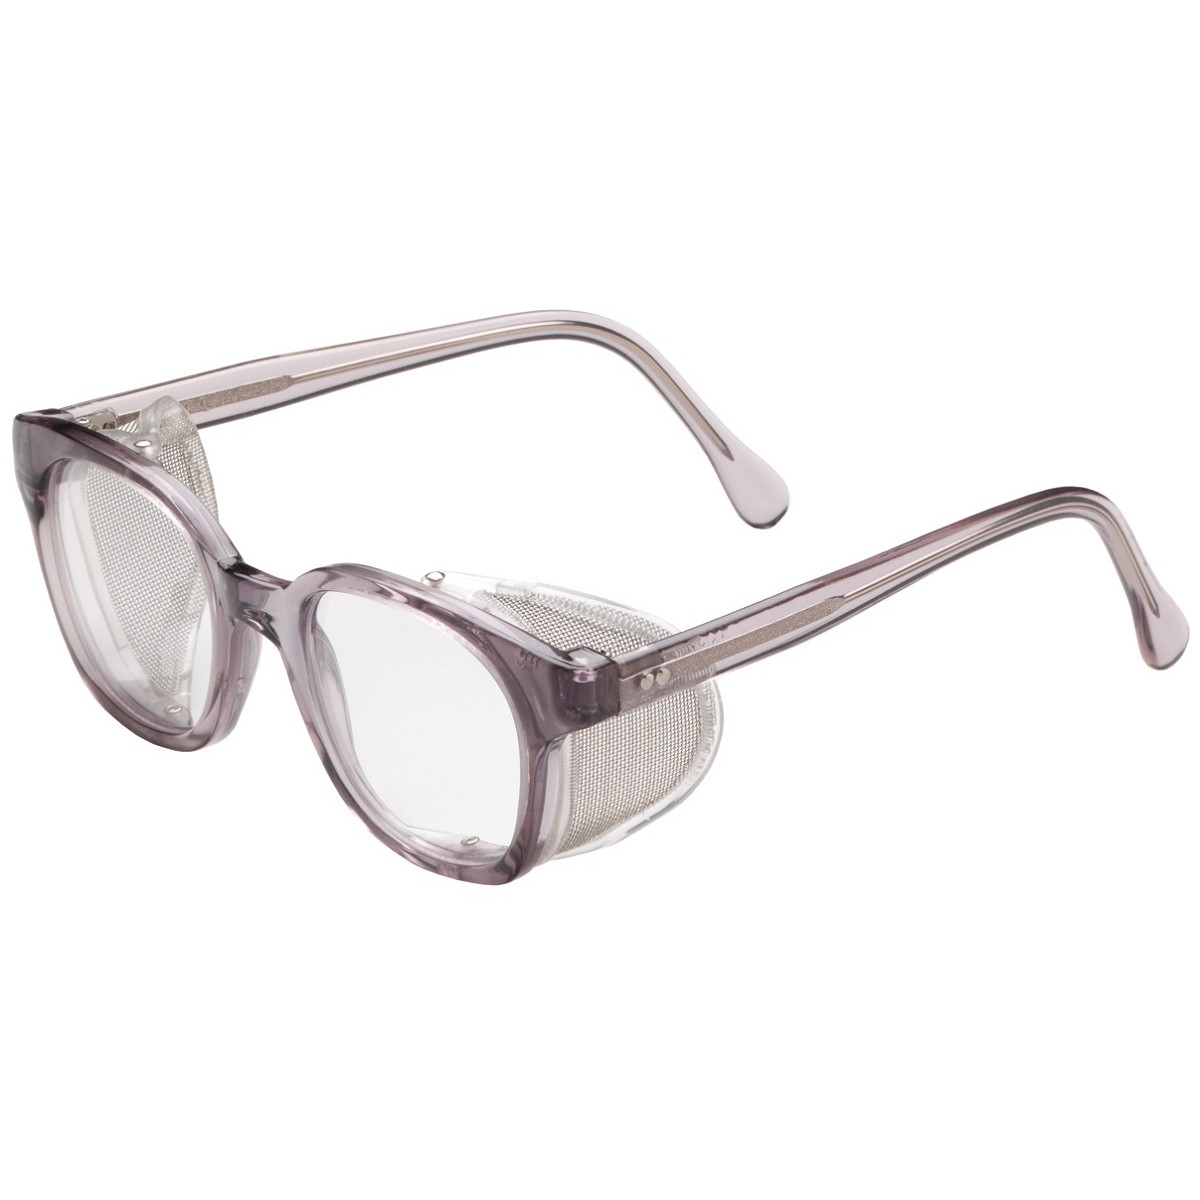 Bouton 5900 Traditional Safety Glasses - Smoke Frame - Clear Anti-fog Lens, $8.69